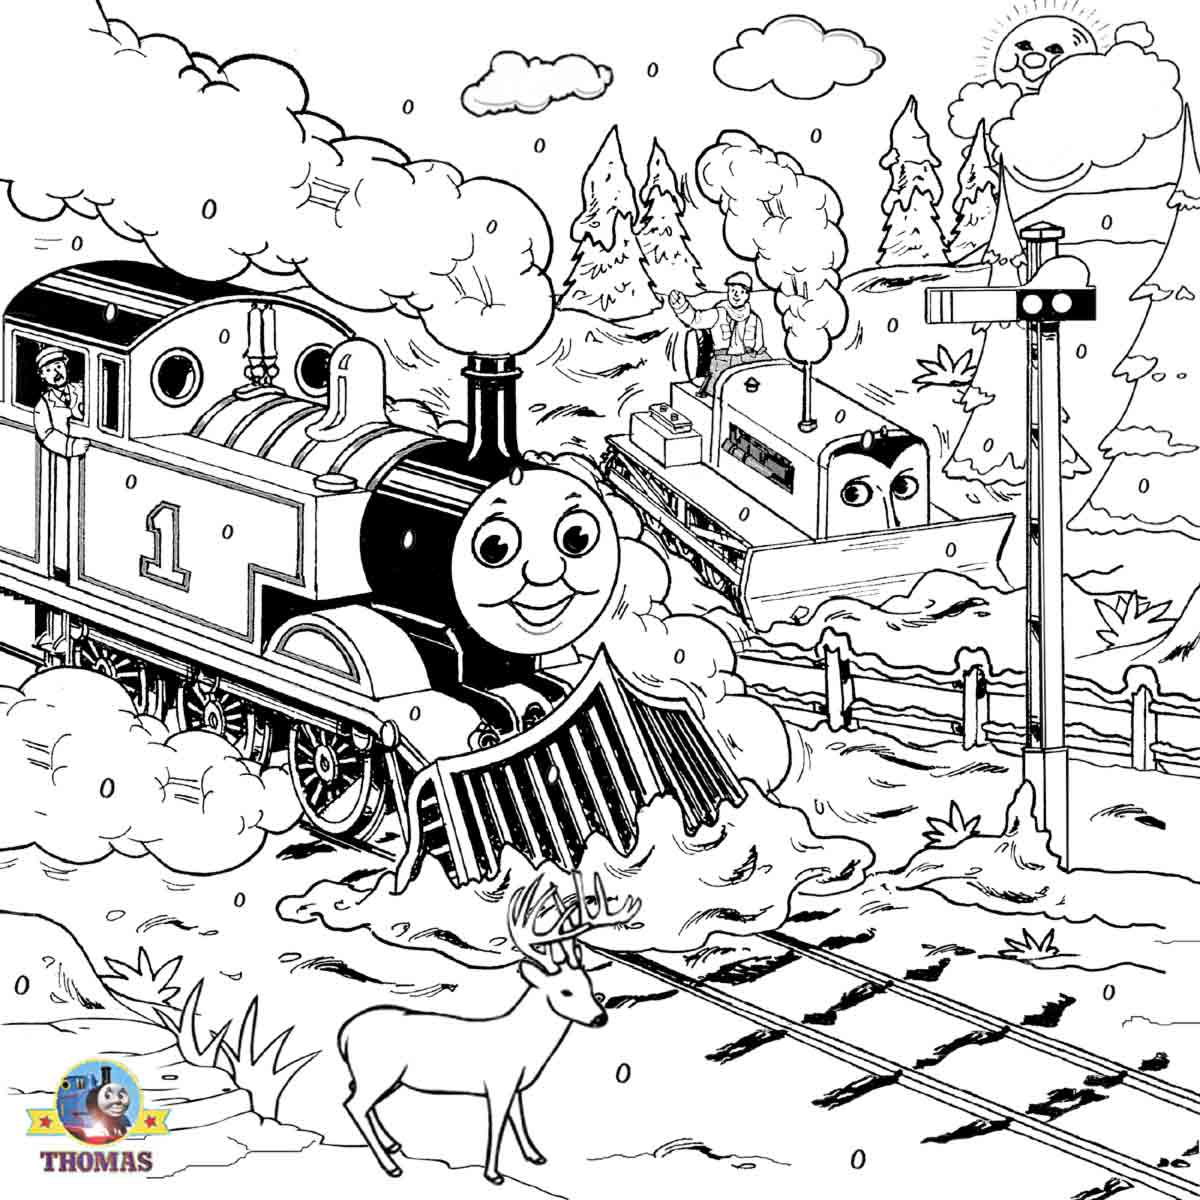 emily the tank engine coloring pages 480 best images about kids coloring pages on pinterest emily engine tank the pages coloring